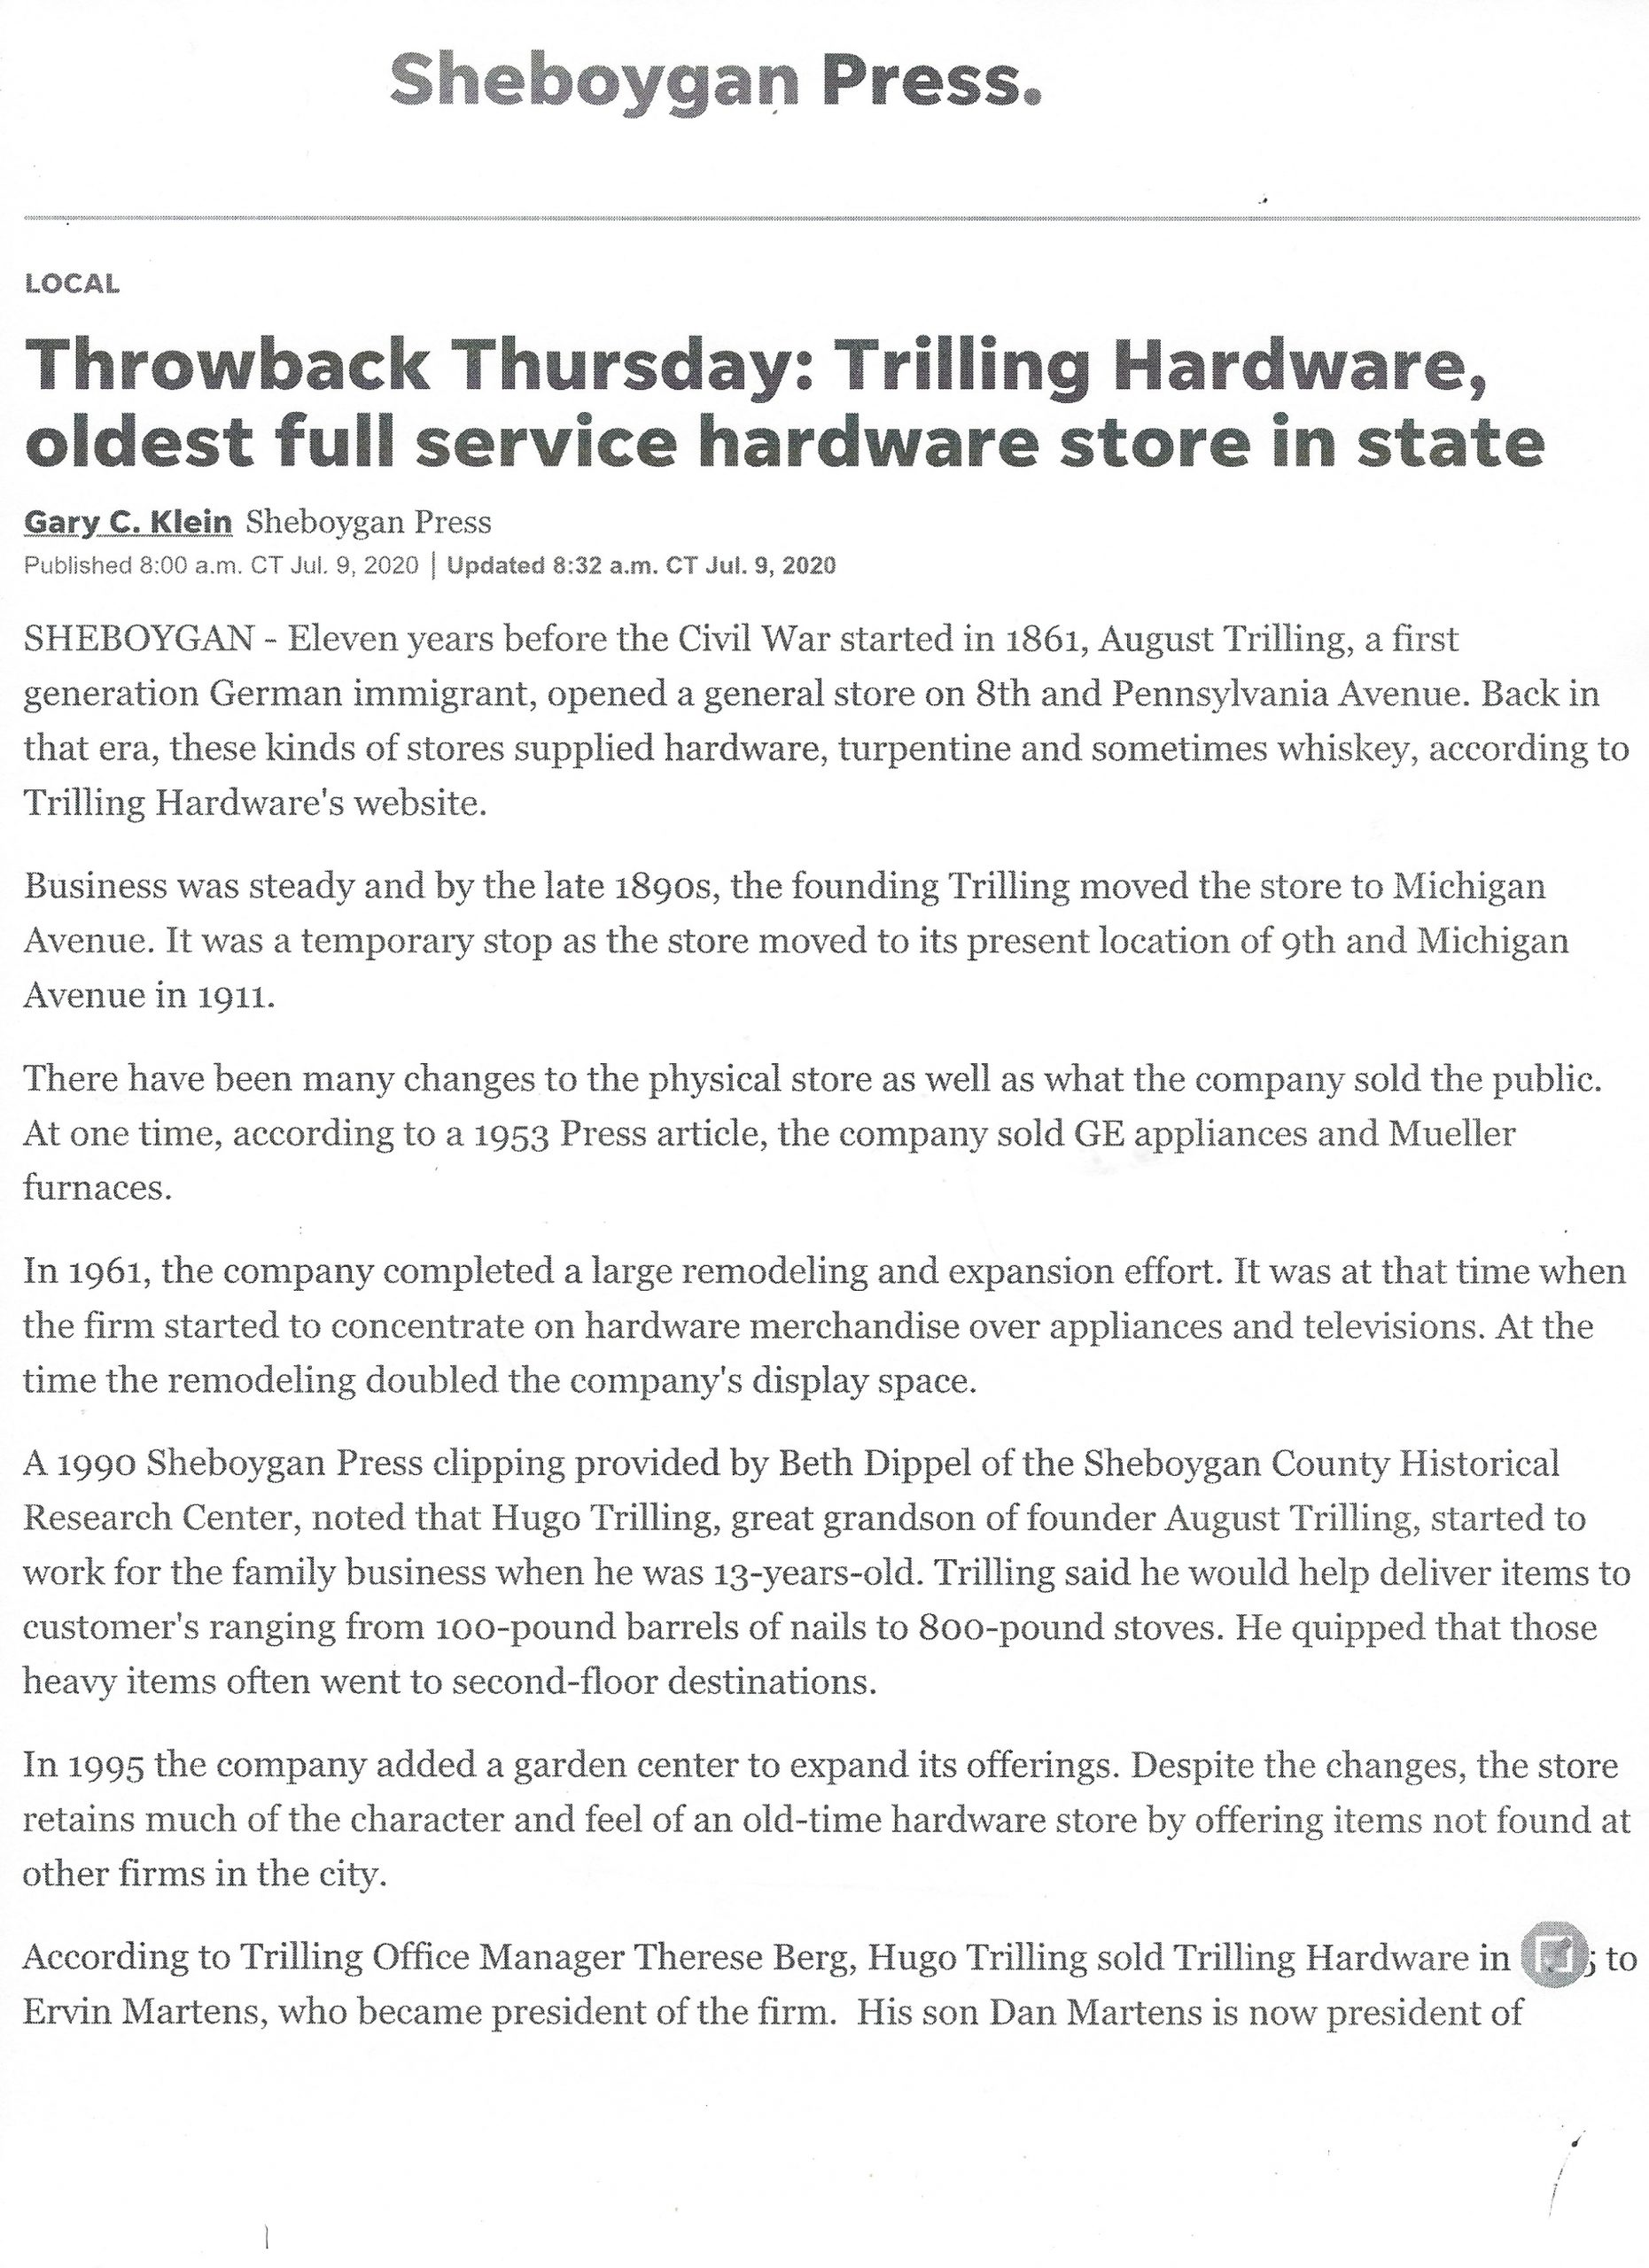 trilling true value hardware sheboygan press article